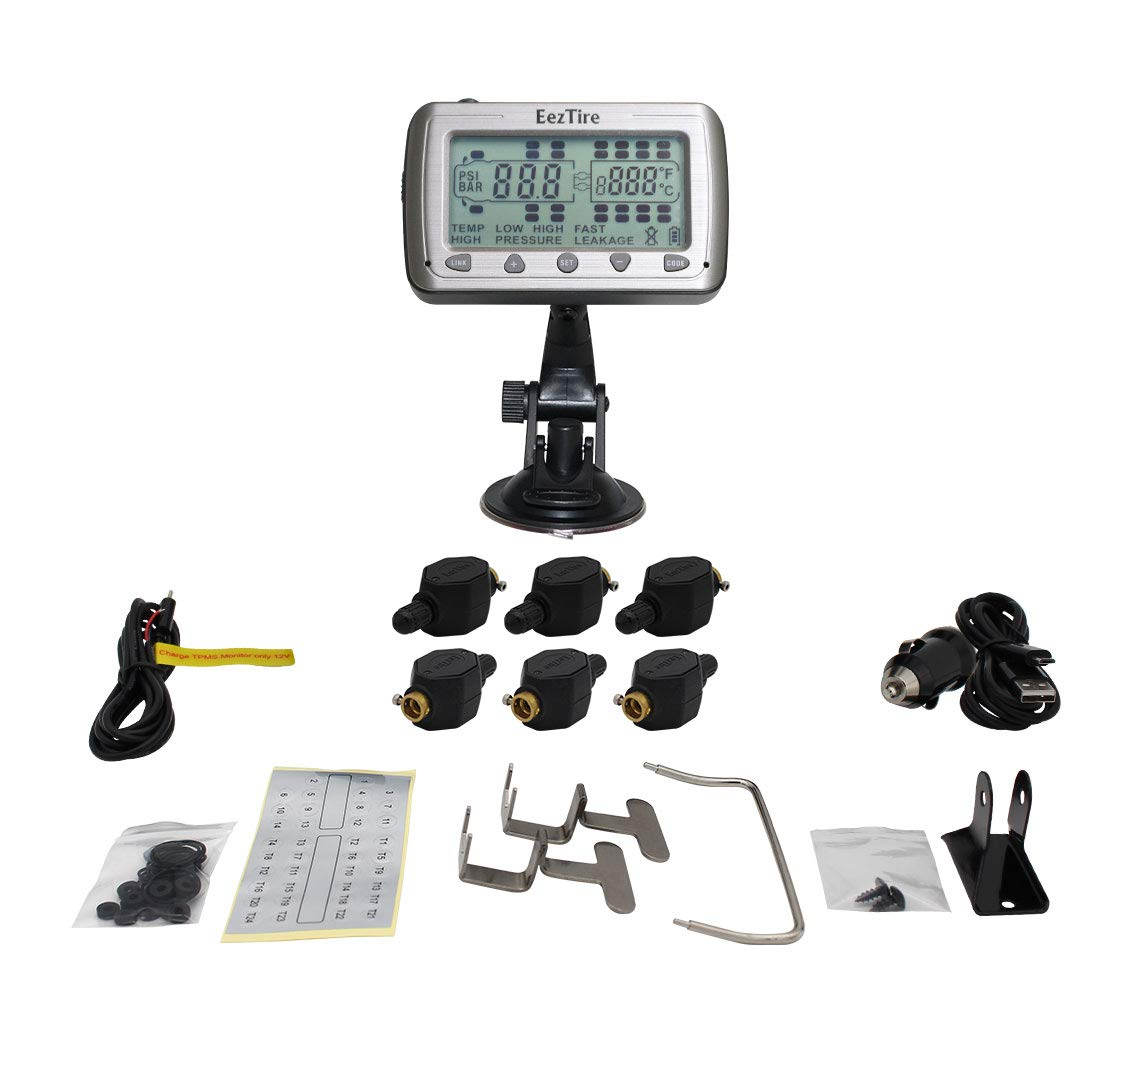 3-Year Warranty EEZTire-TPMS Real Time//24x7 Tire Pressure Monitoring System - 4 Anti-Theft Sensors TPMS4 incl